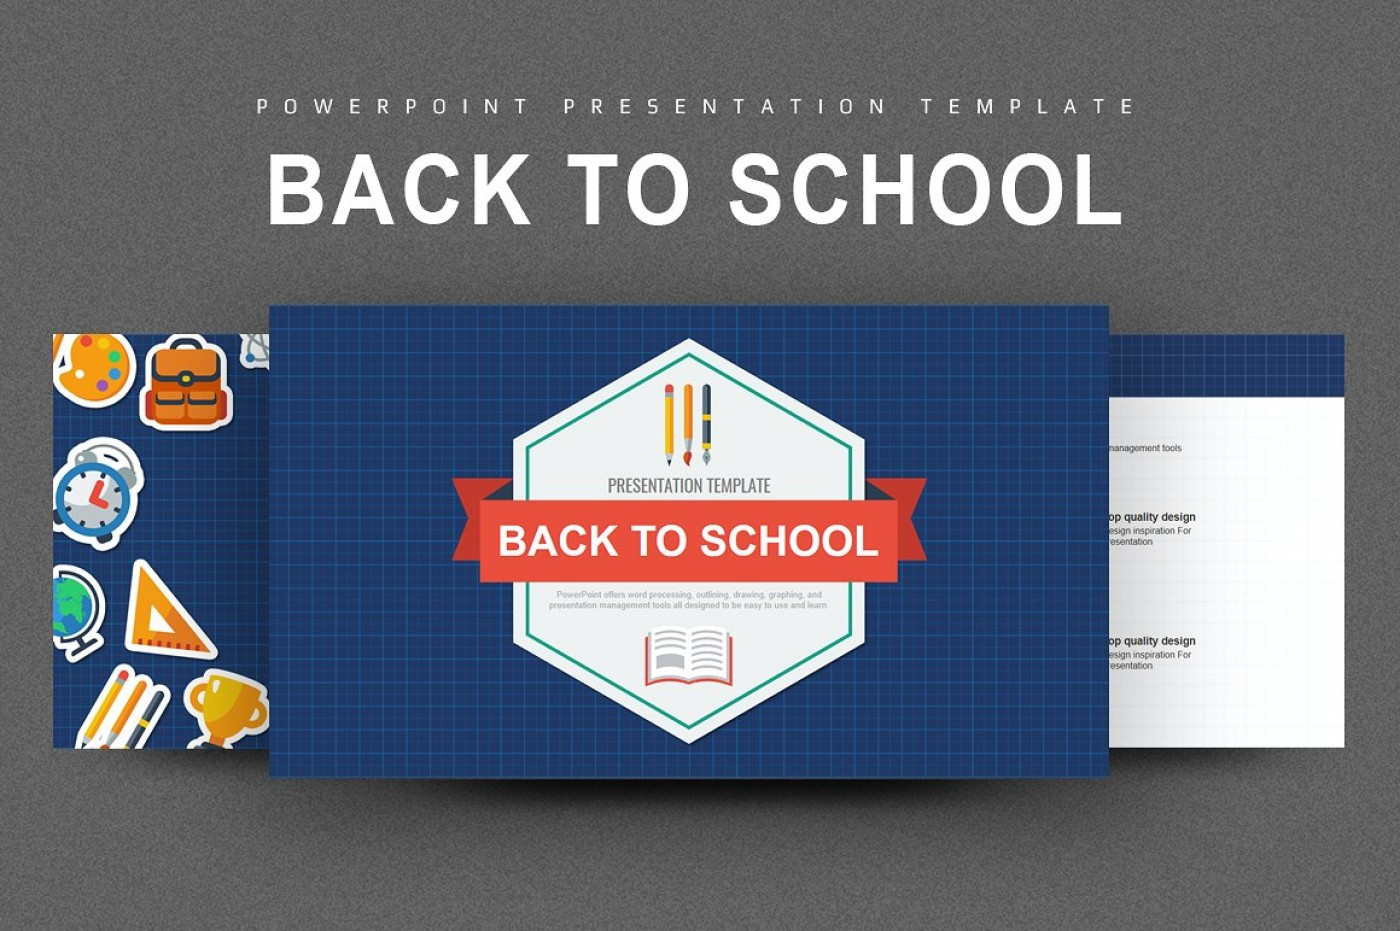 003 Wondrou Powerpoint Template Free Education Idea  Download 2018 For School1400